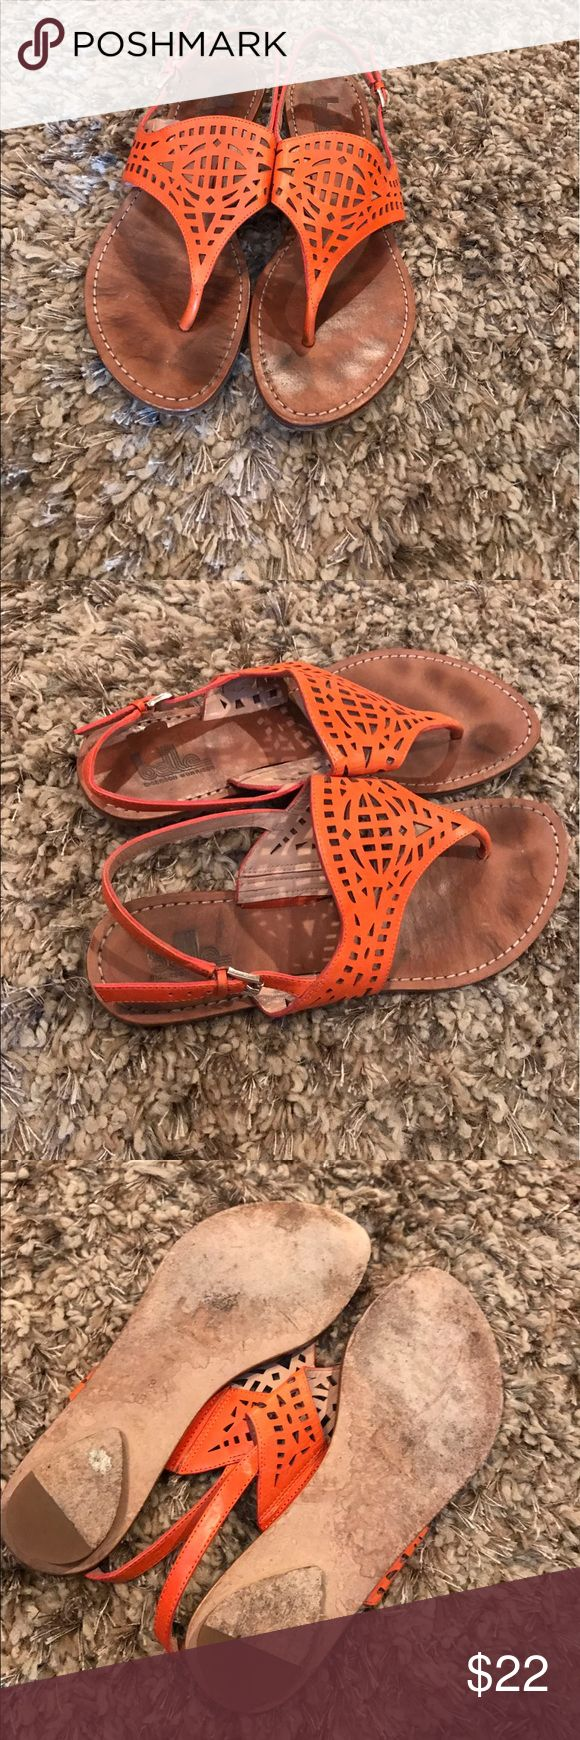 Belle Sigerson Morrison sandals Belle Sigerson Morrison orange adjustable flat sandals in good condition. There is wear on sole and toe area from use shown in pics. Shoes Sandals